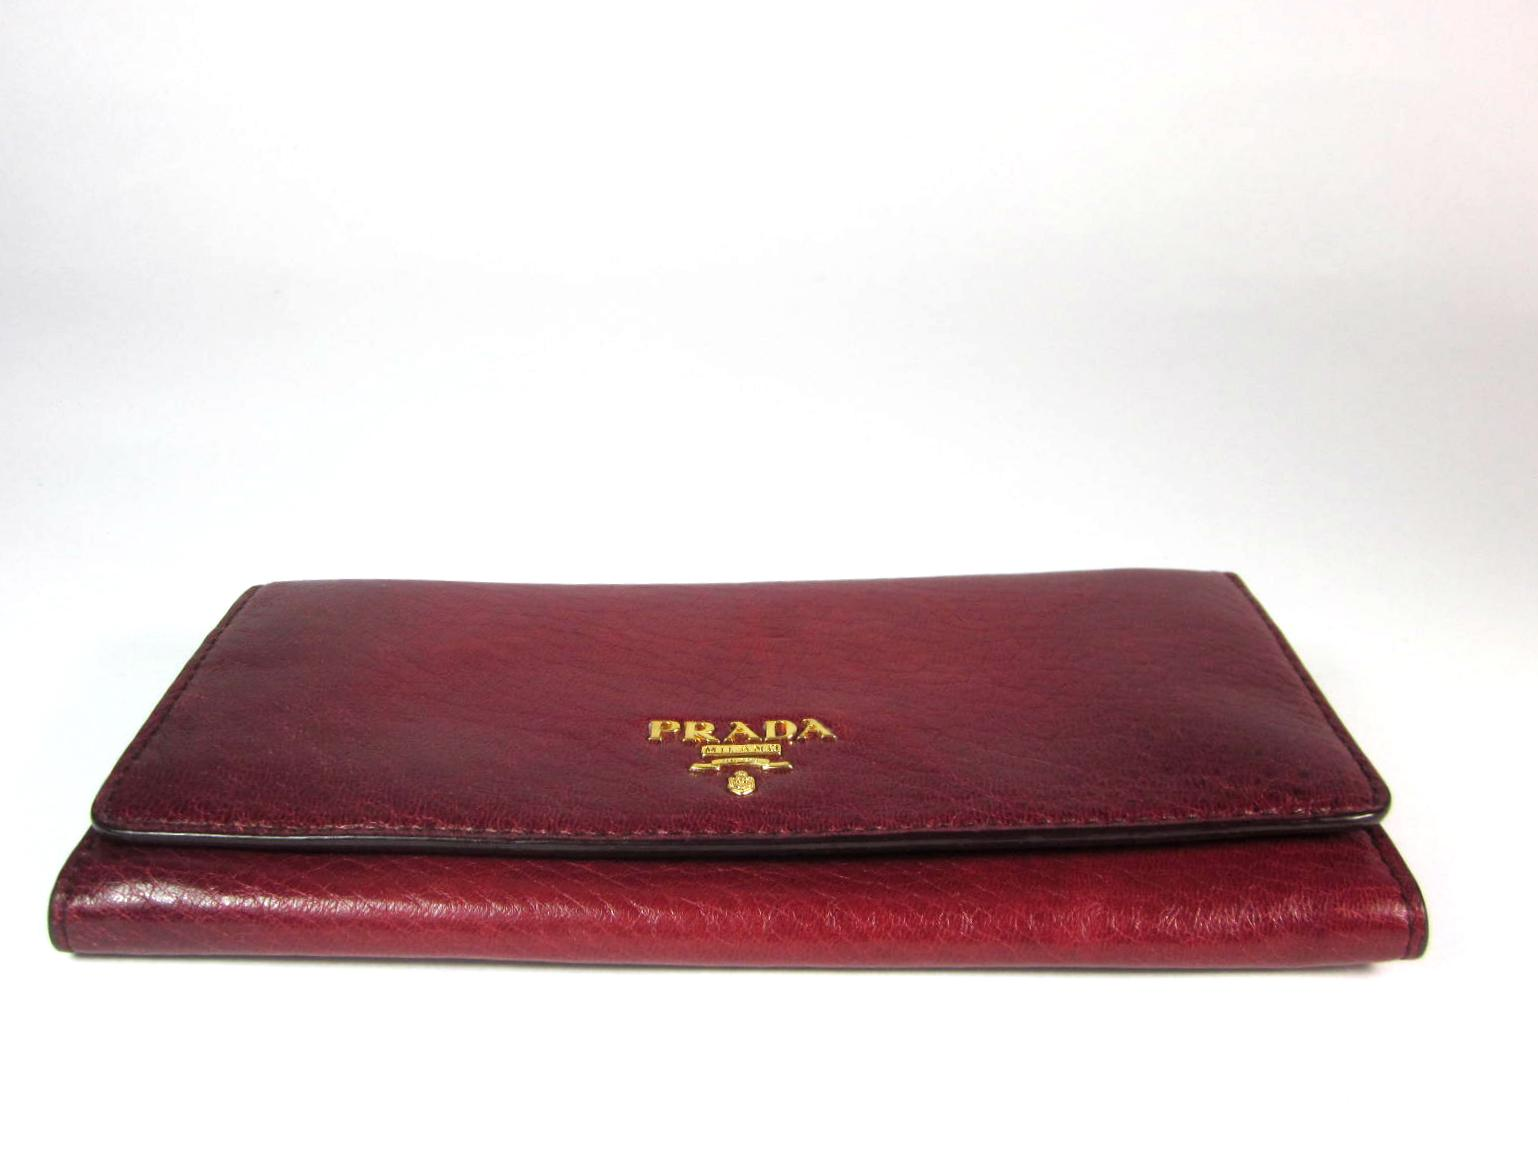 747aee1af7393e cheapest prada red wine leather logo long wallet organizer. 1234567891011  4c917 a95a2